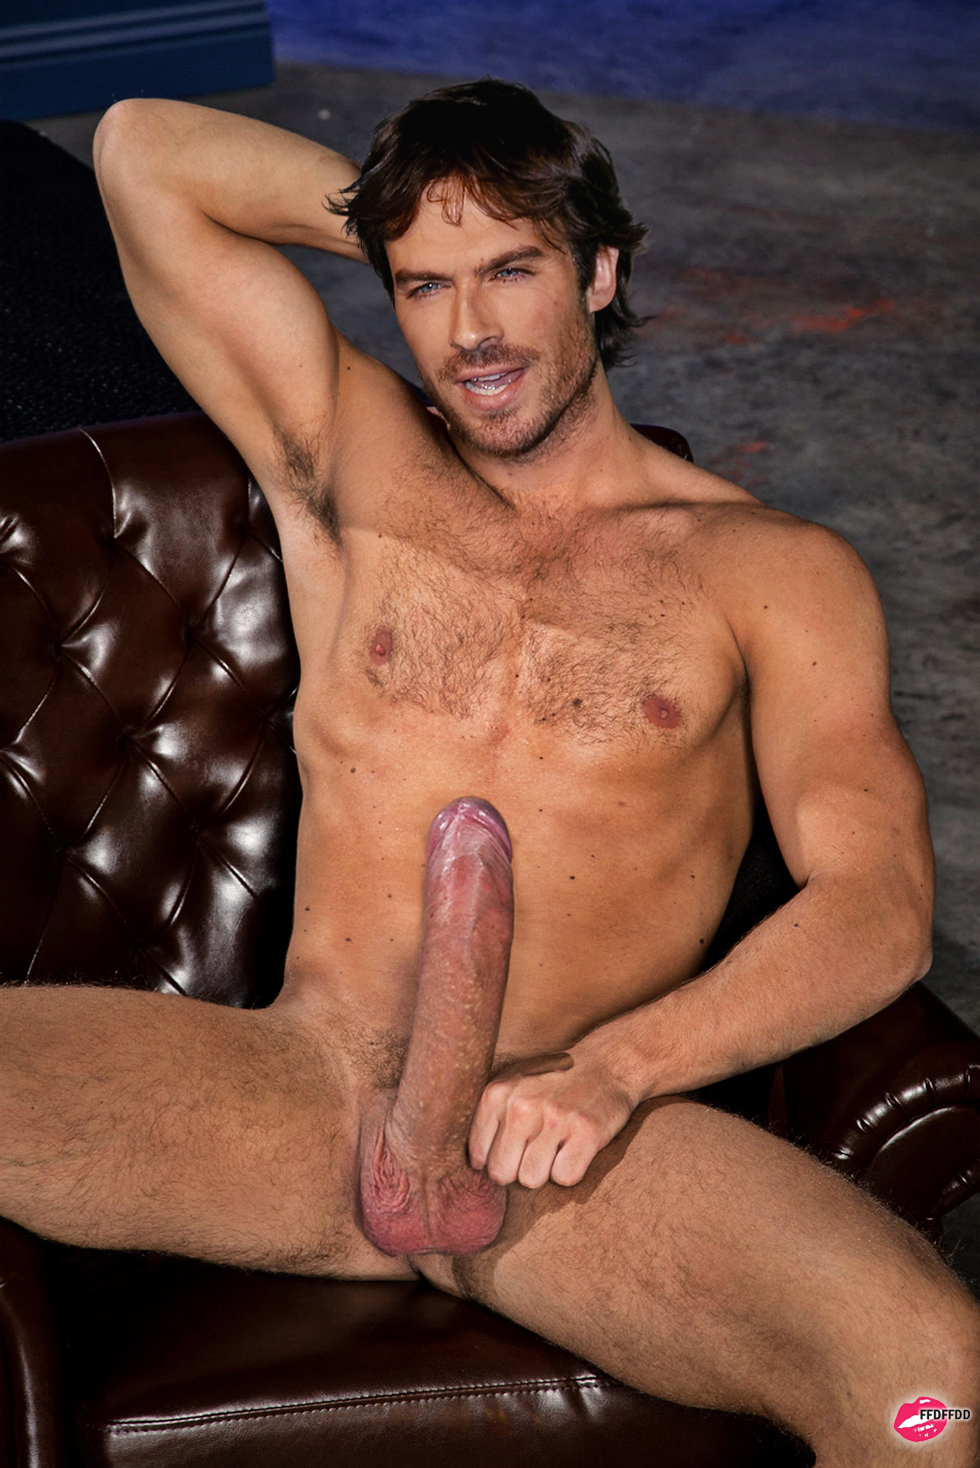 Realize, told... Big cock in pussy ian somerhalder doubt